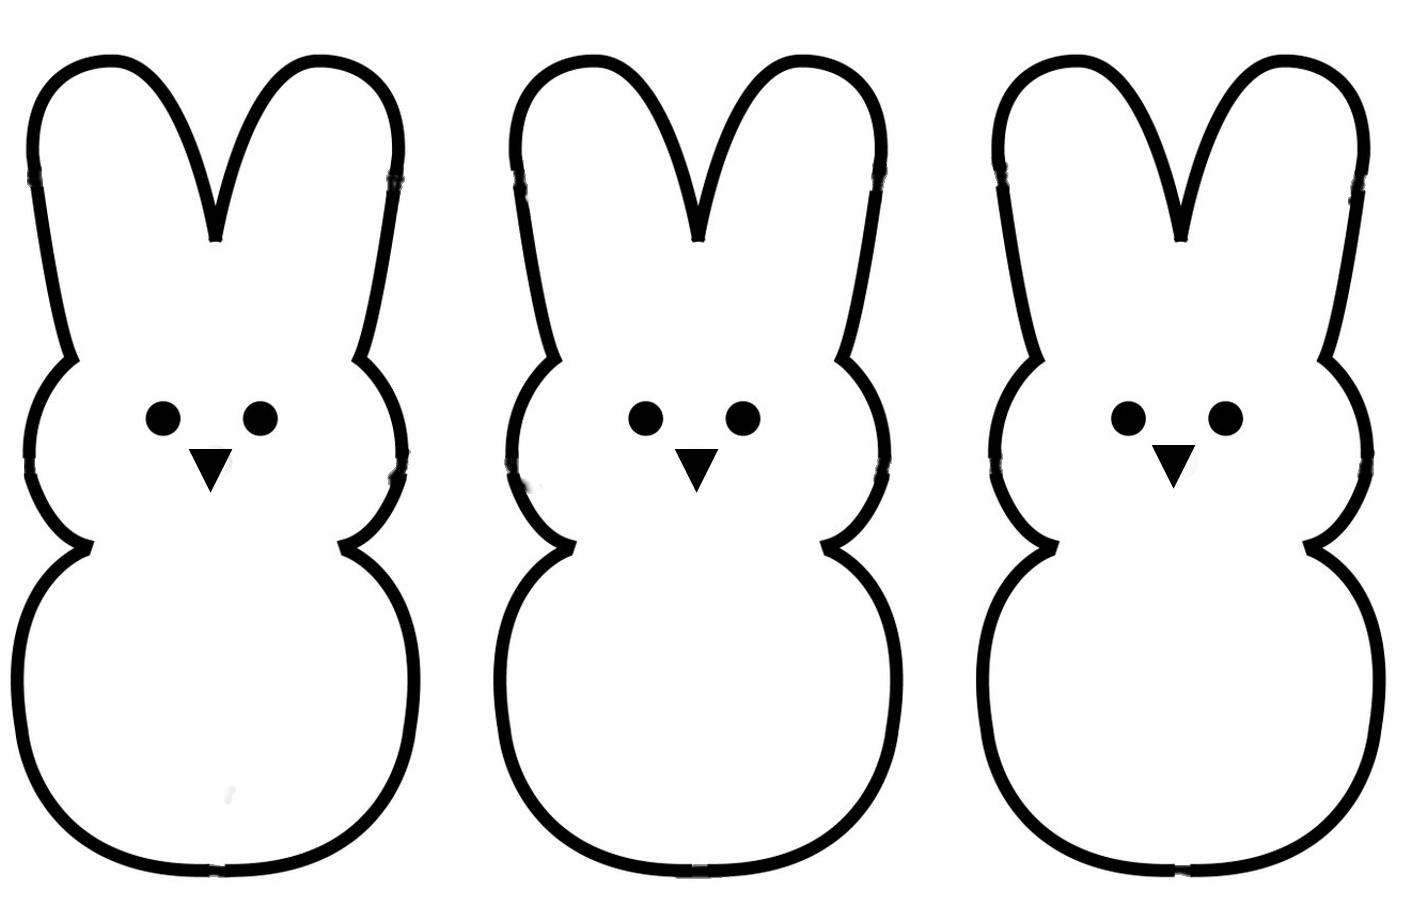 Peeps clipart. Silhouette at getdrawings com